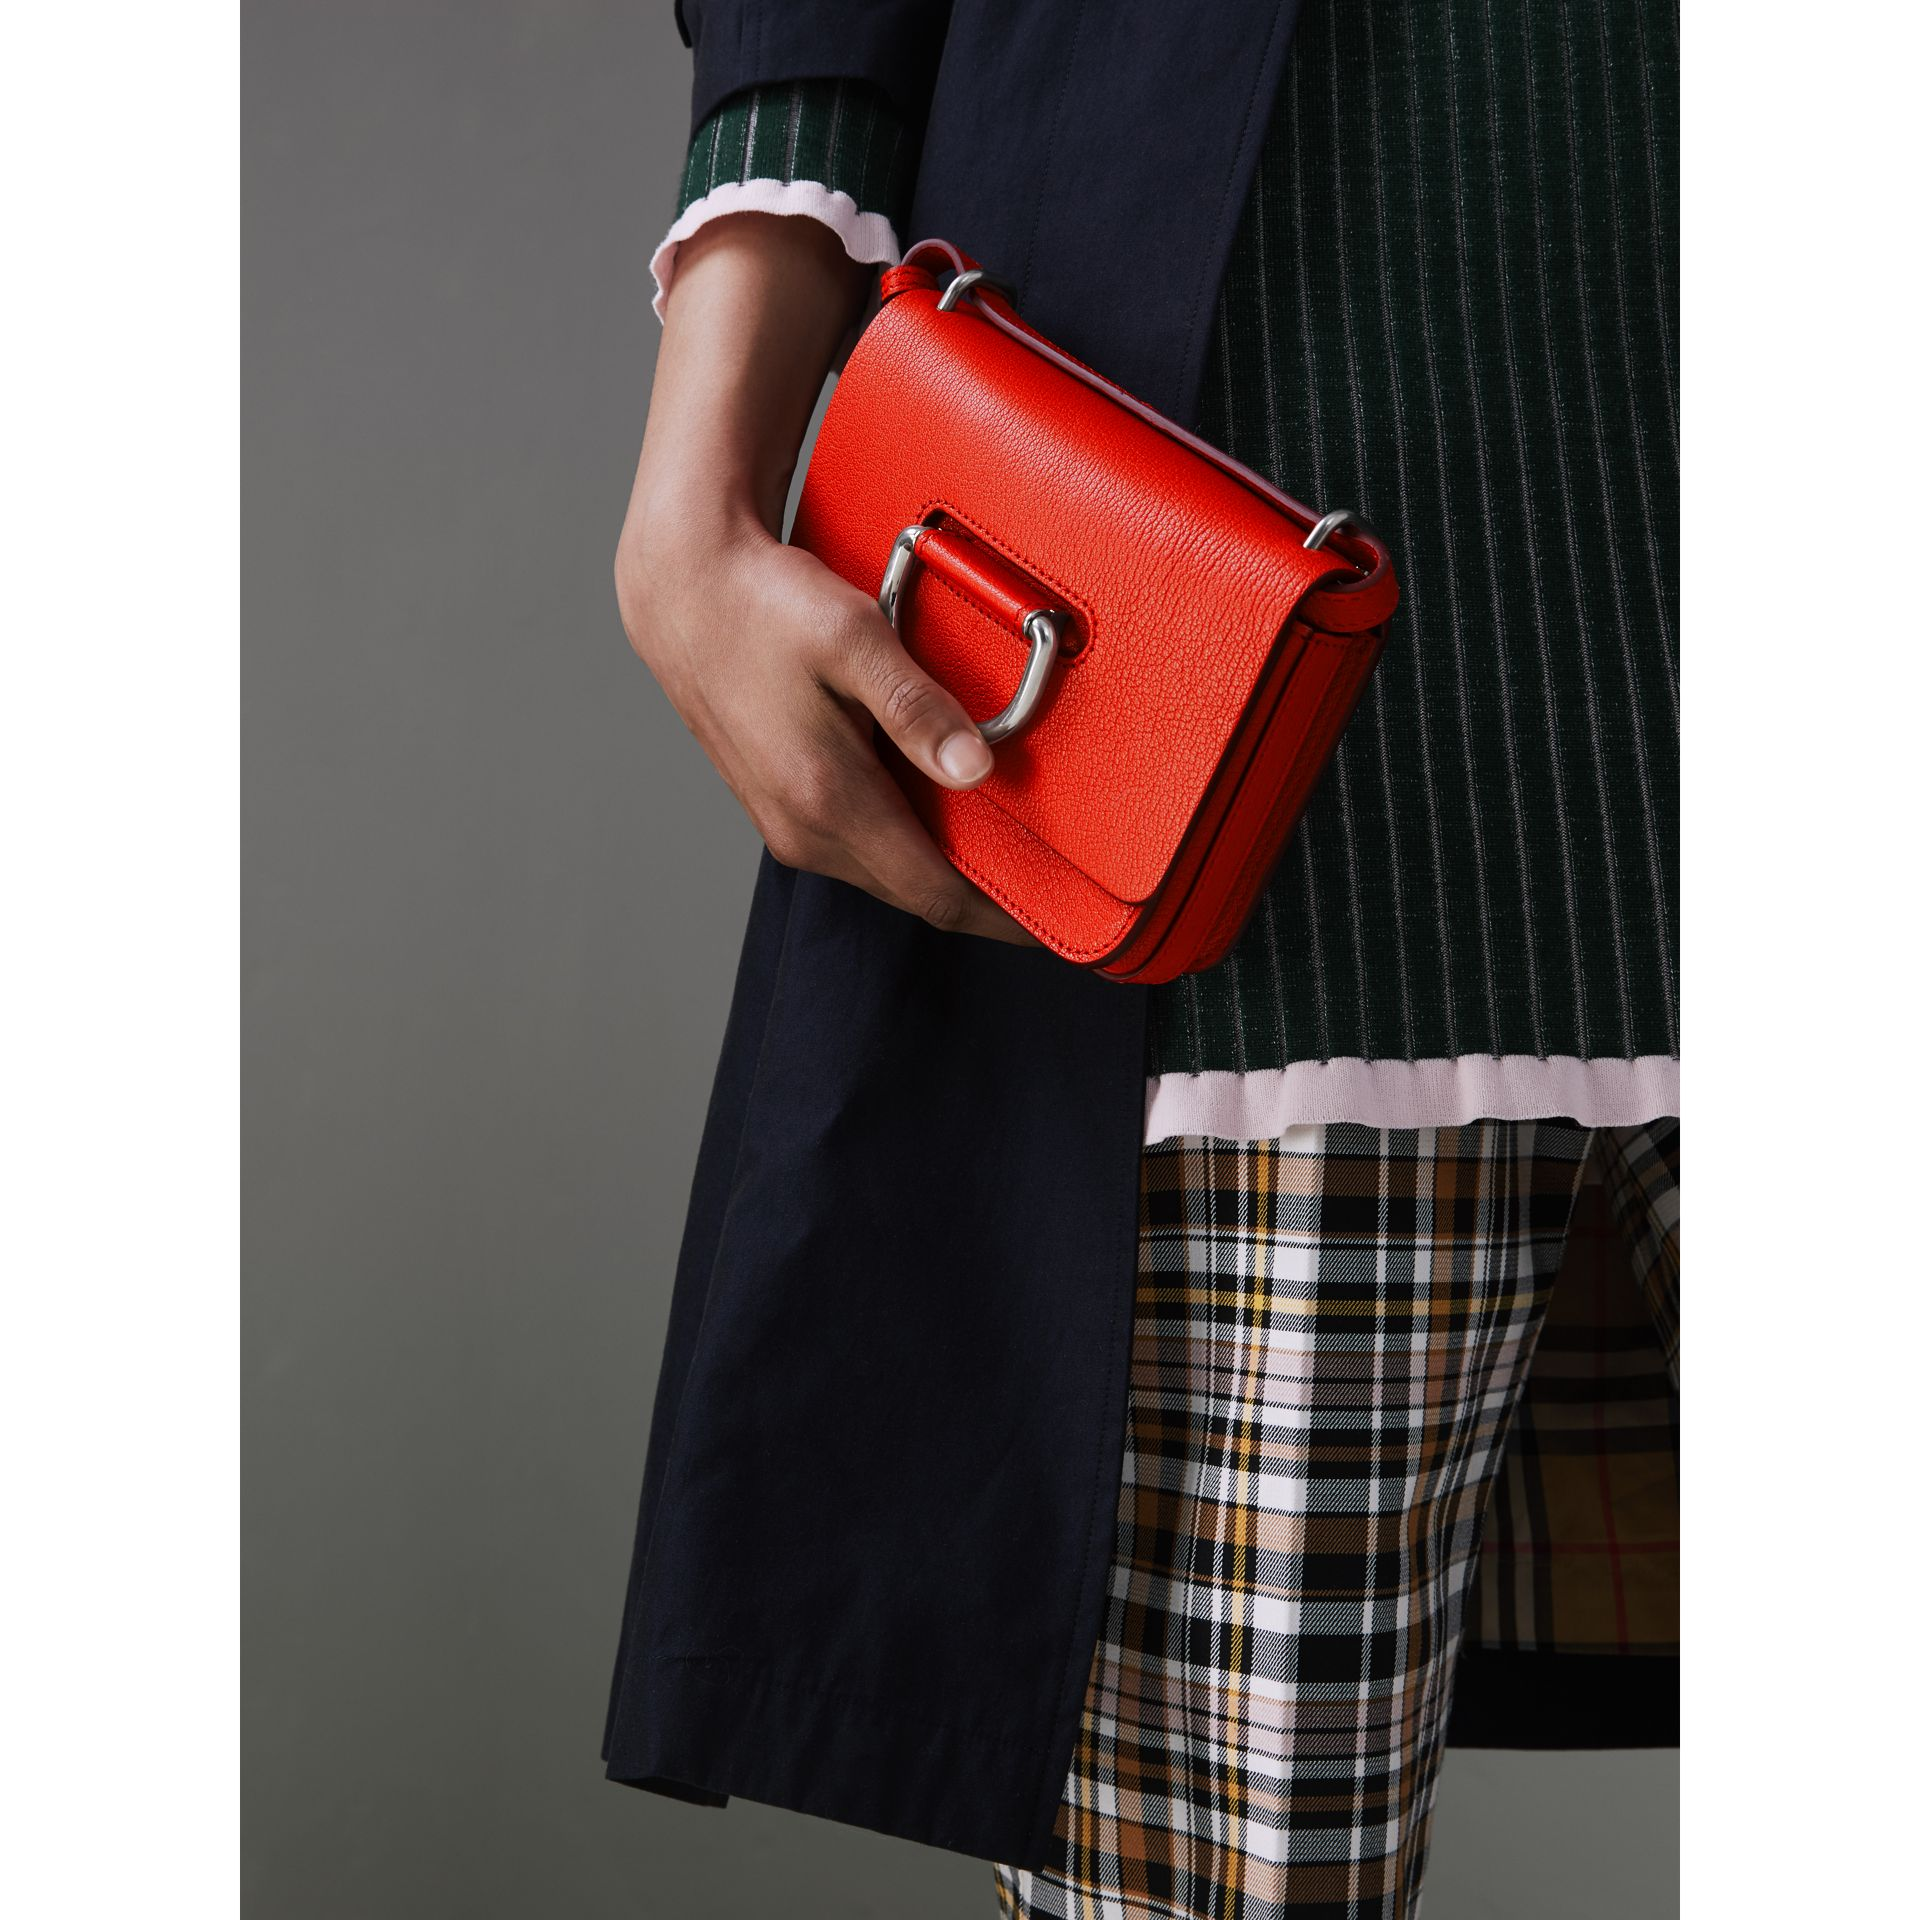 Mini sac The D-ring en cuir (Rouge Vif) - Femme | Burberry - photo de la galerie 3